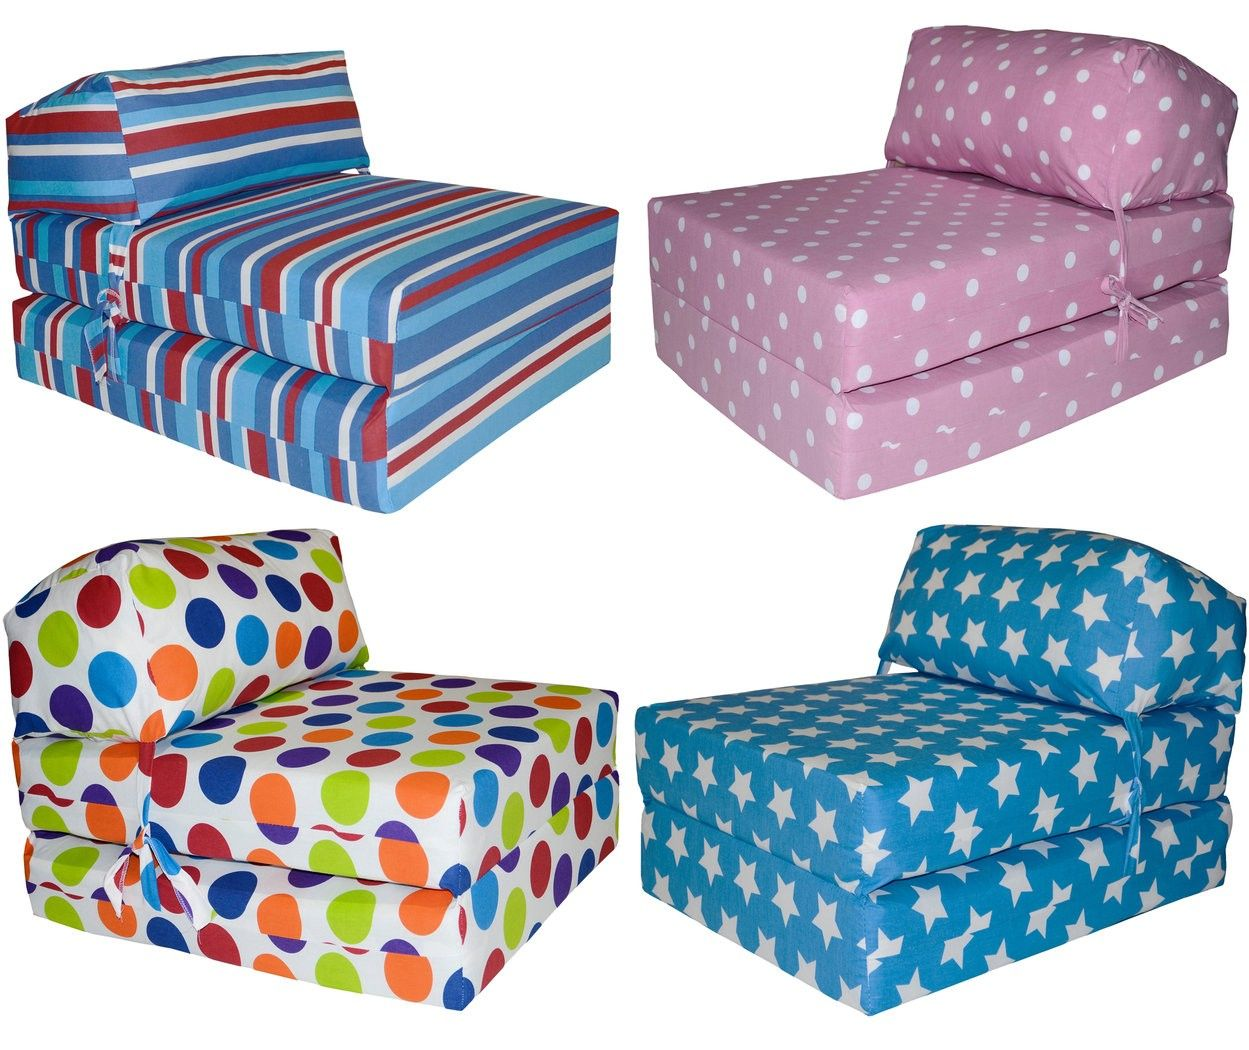 Kids Chair Bed Kids Fold Out Chair Bed Fold Out Chair Kids Chairs Fold Out Beds